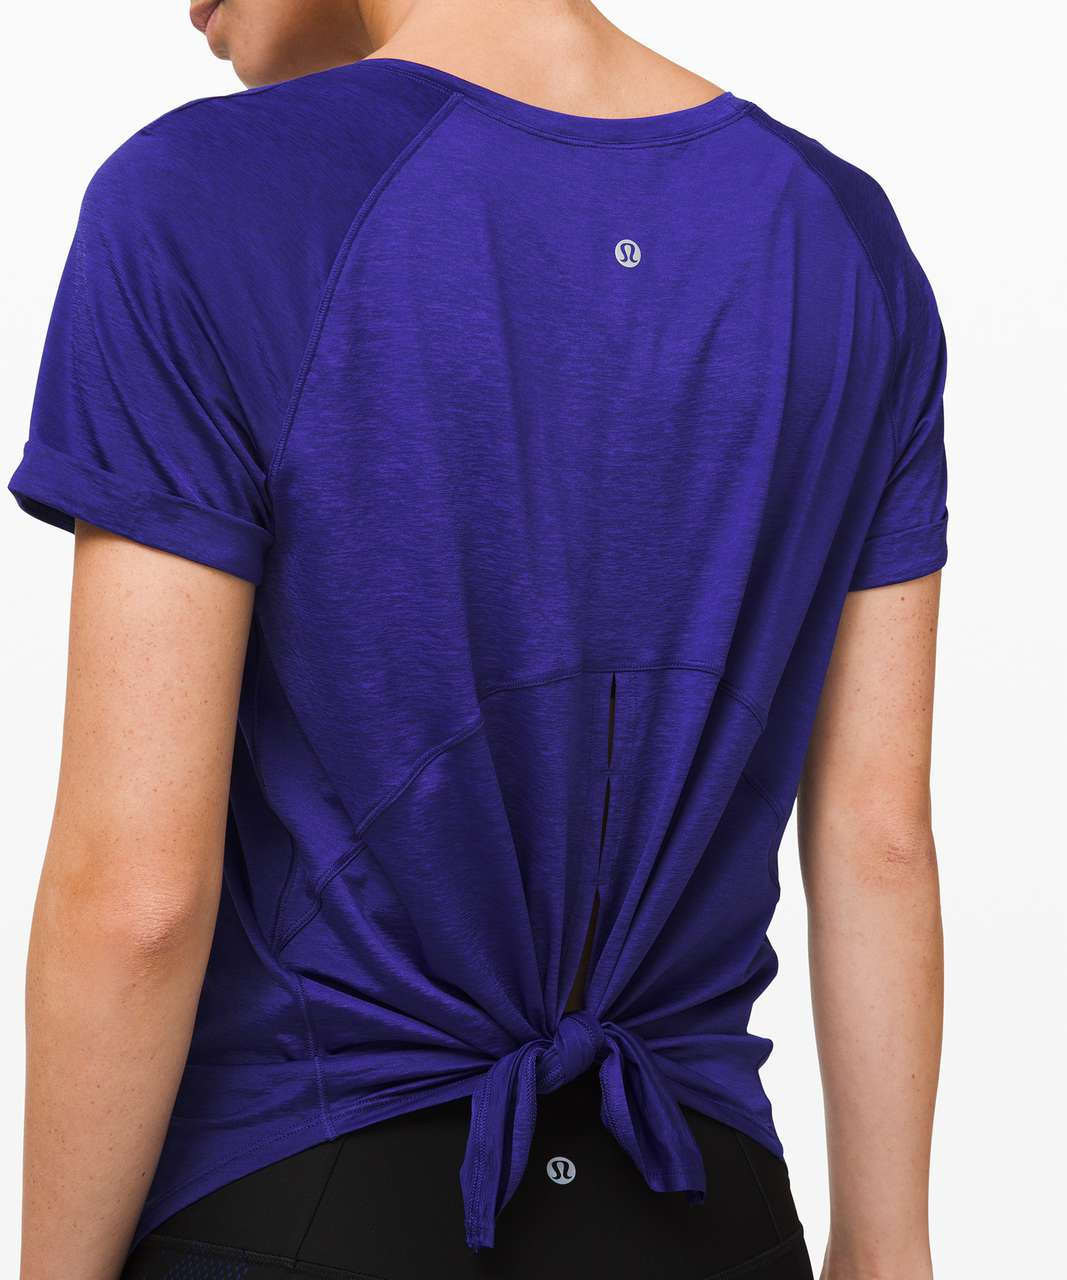 Lululemon Open Up Tie Back Tee - Larkspur